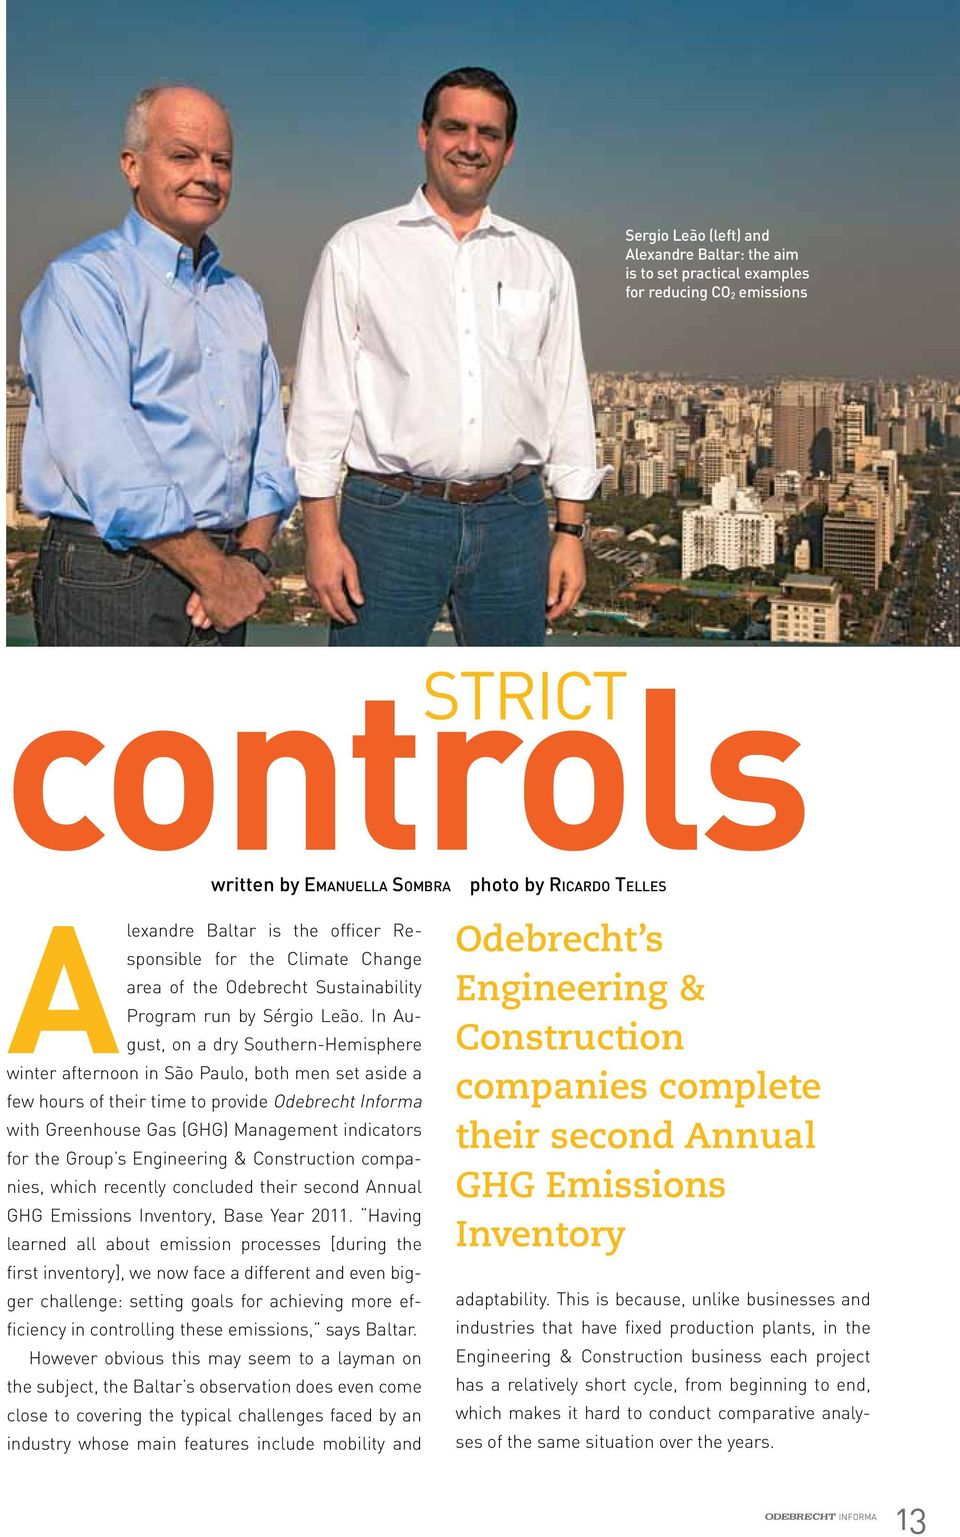 In August, on a dry Southern-Hemisphere winter afternoon in São Paulo, both men set aside a few hours of their time to provide Odebrecht Informa with Greenhouse Gas (GHG) Management indicators for